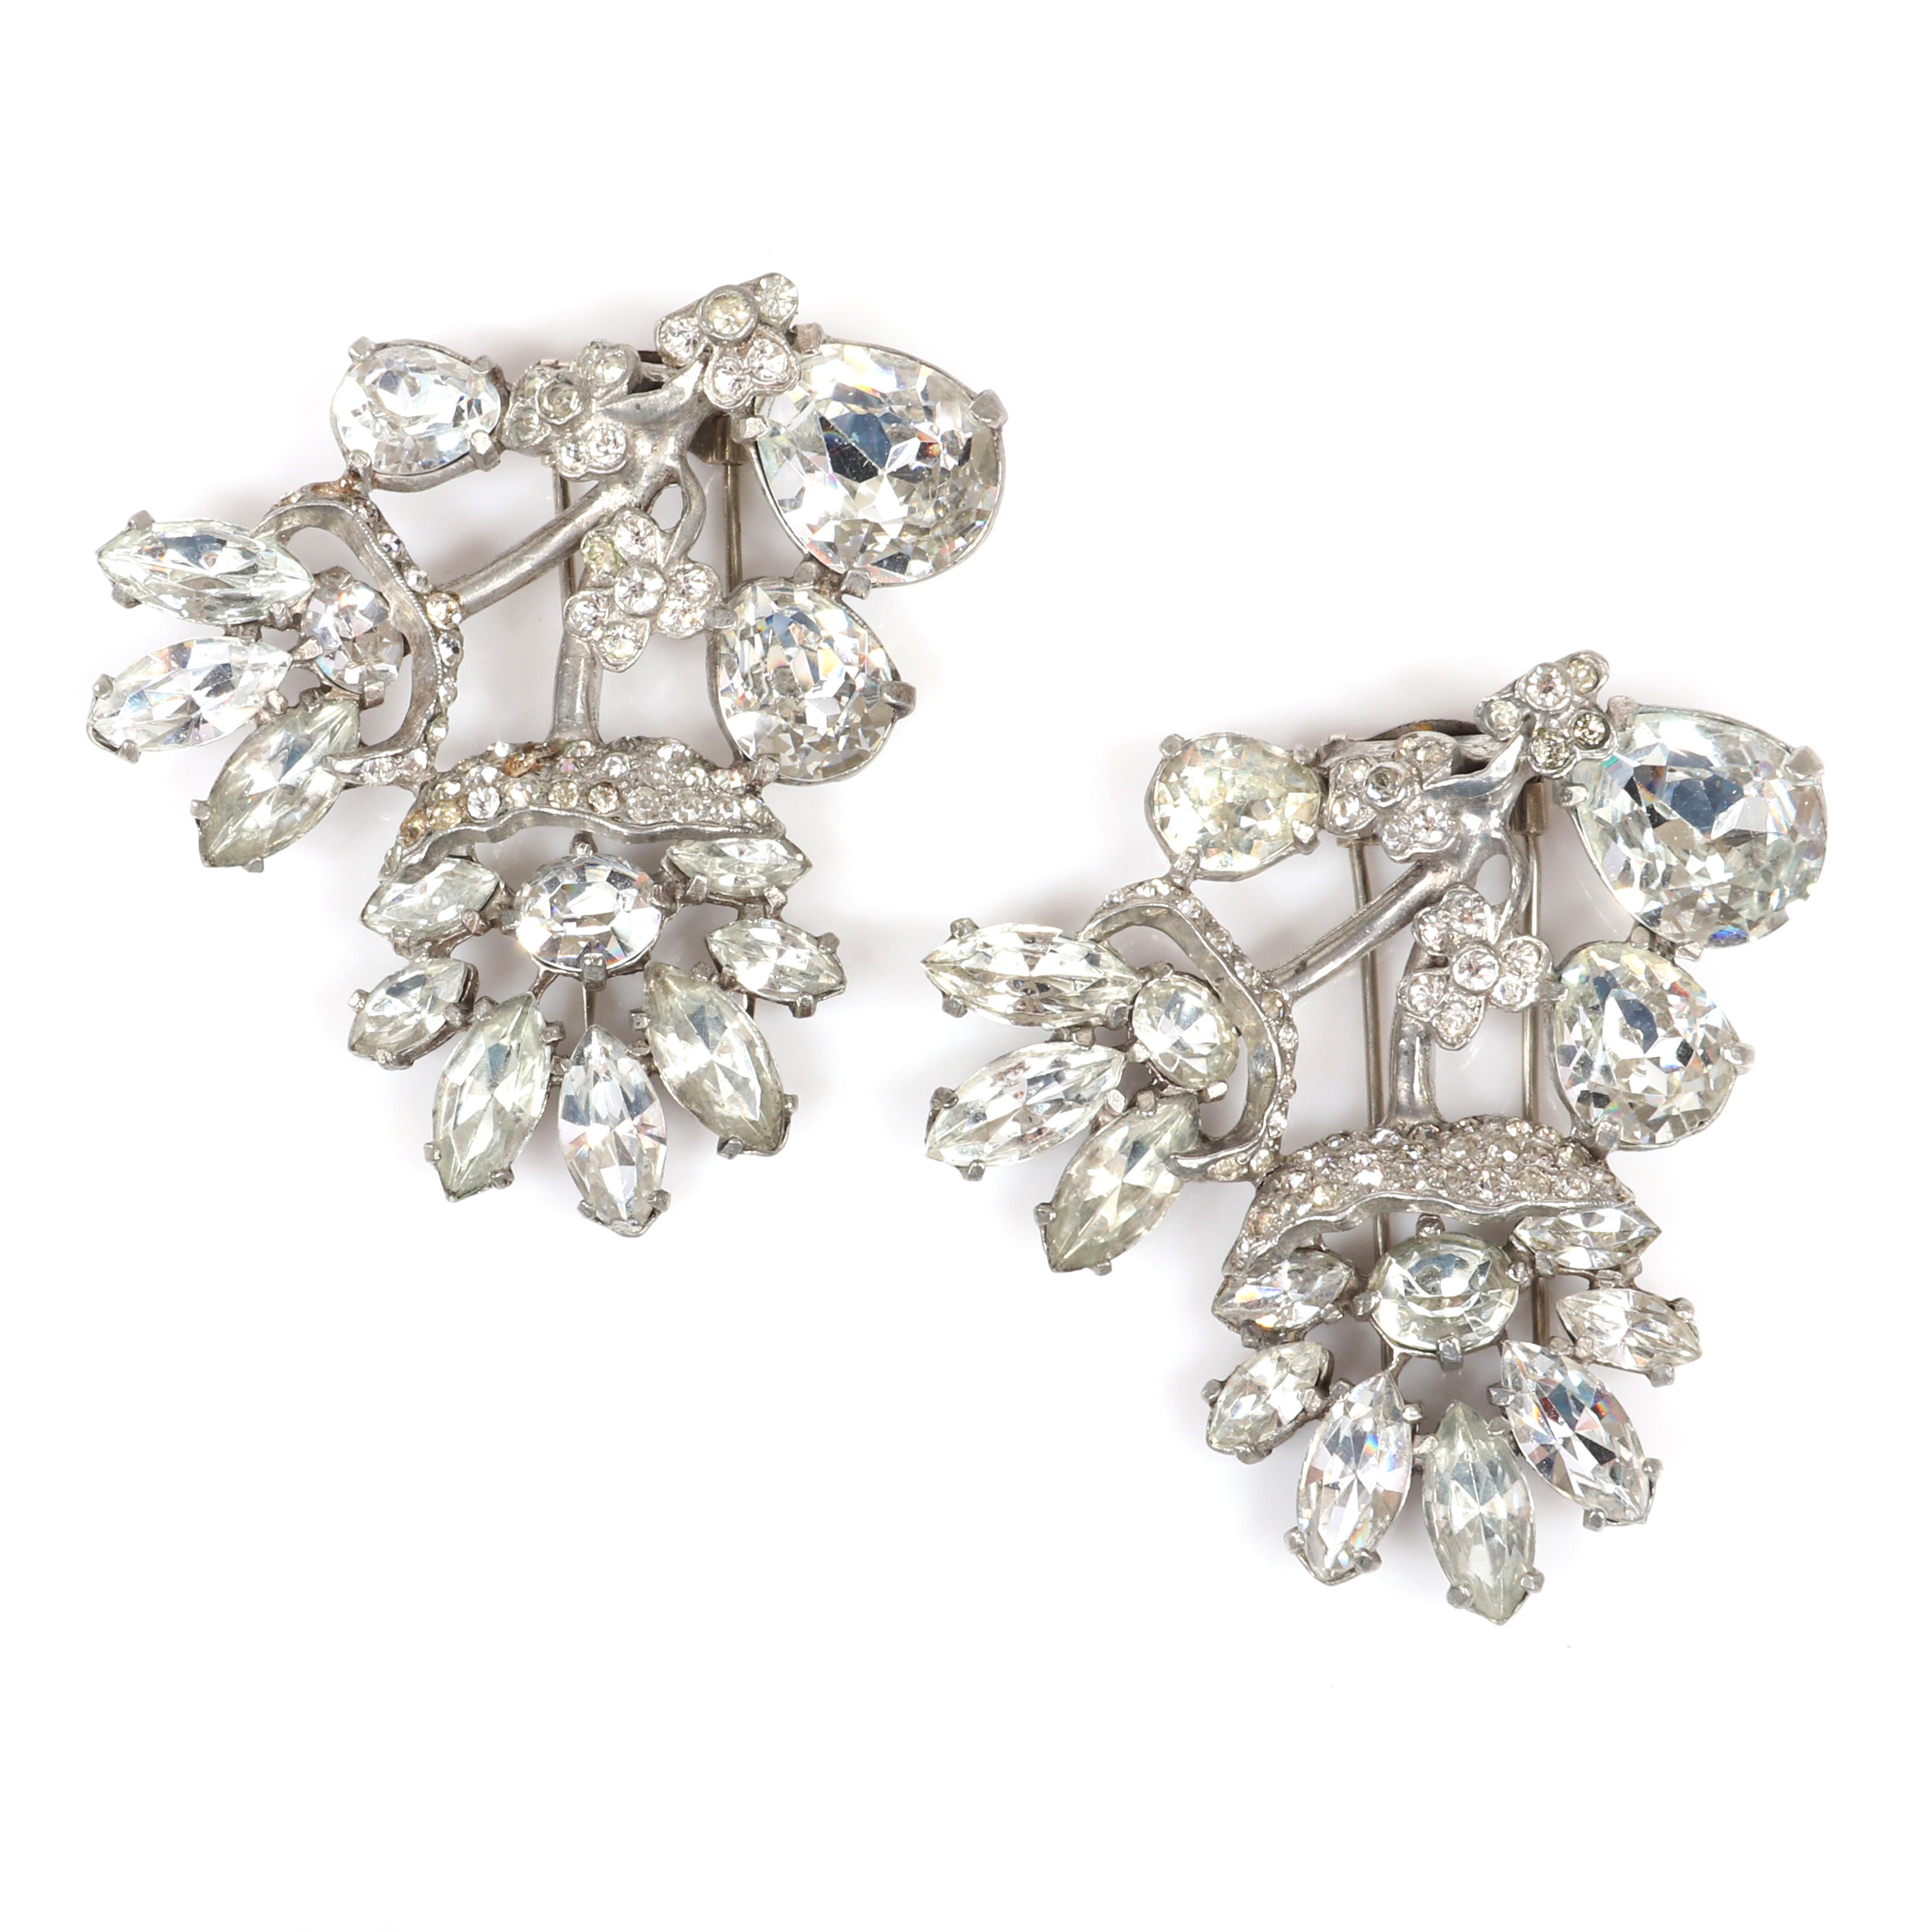 """Eisenberg Original pair of matching floral fur clips with flowers flowing from stems with clear bezel-set and marquise crystal rhinestones and pave, mid-1940s. 2 1/2 x 2 1/2"""" (each)"""